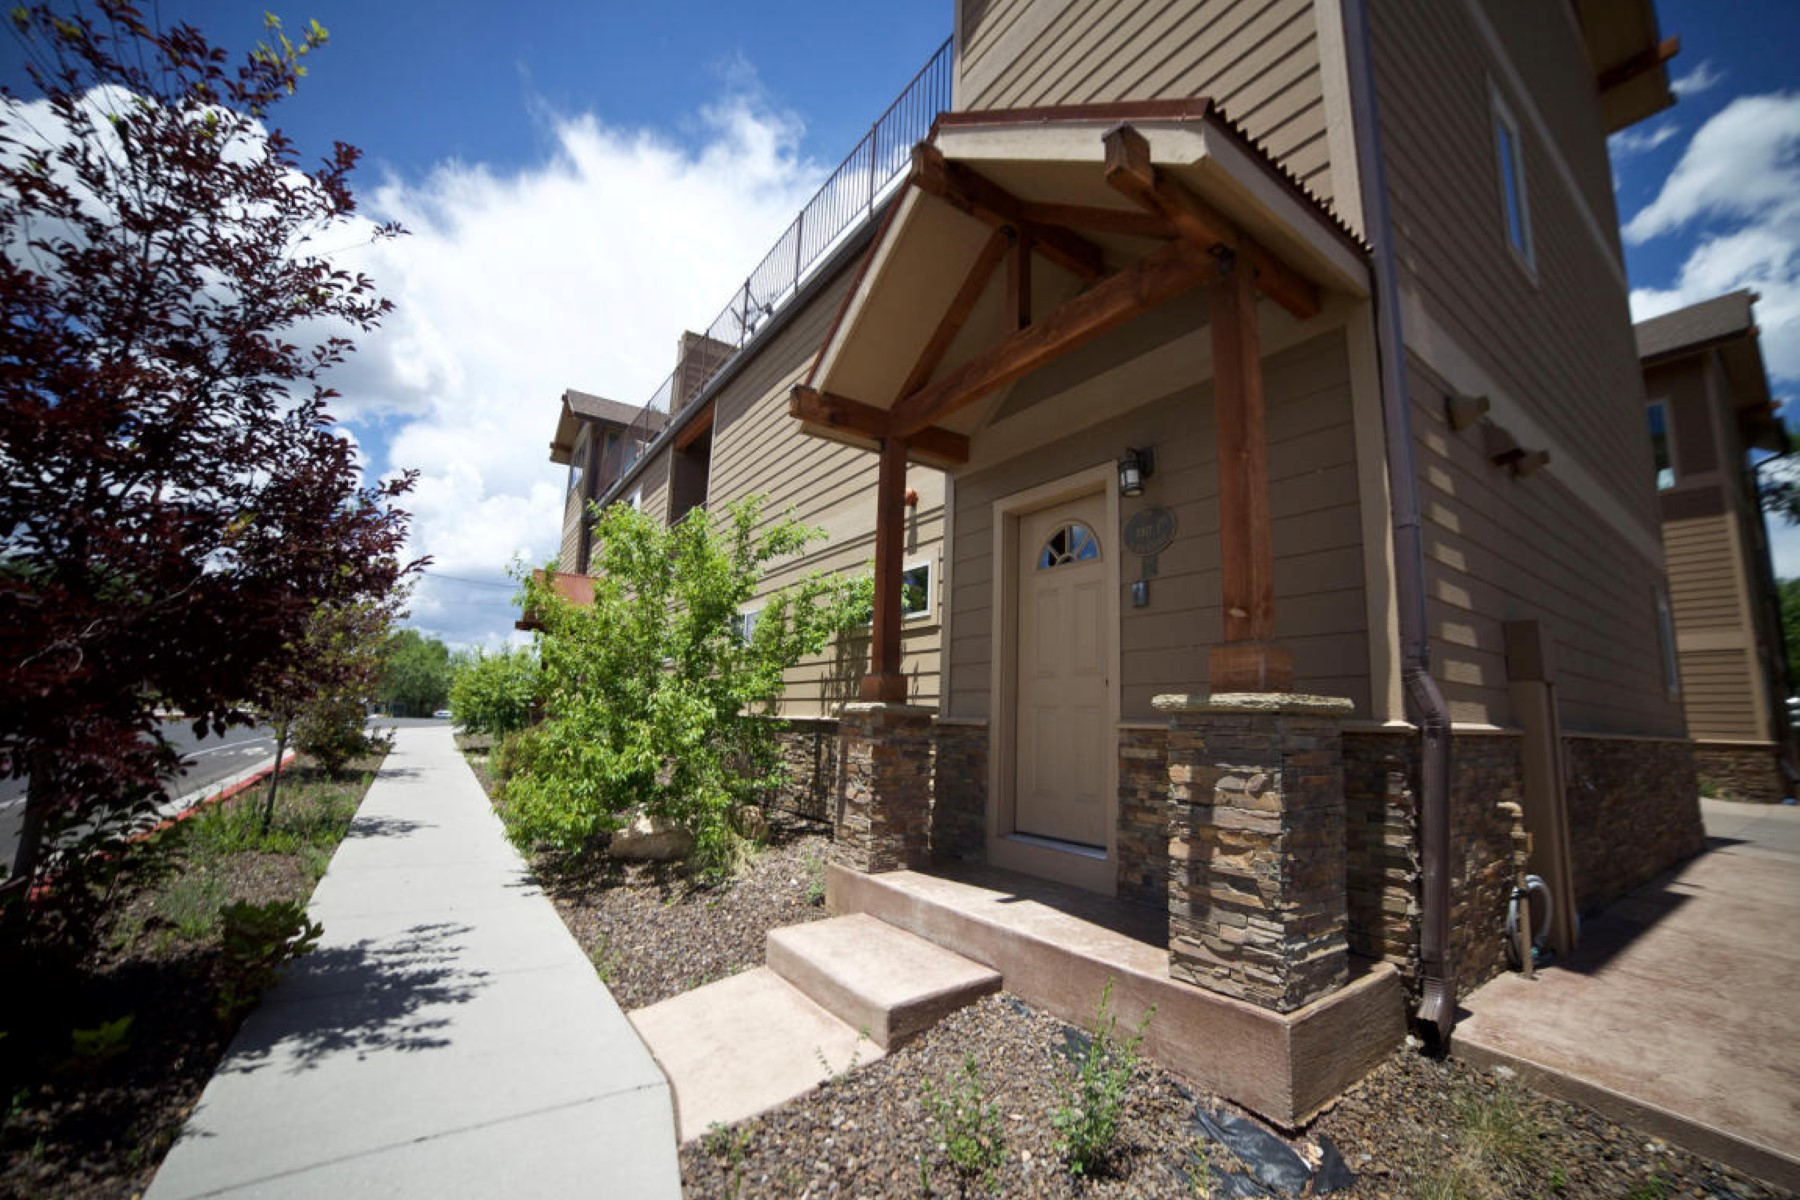 Casa para uma família para Venda às Two spacious bedrooms, full bath and large master retreat with private balcony. 538 S Fountaine ST 1 Flagstaff, Arizona 86001 Estados Unidos